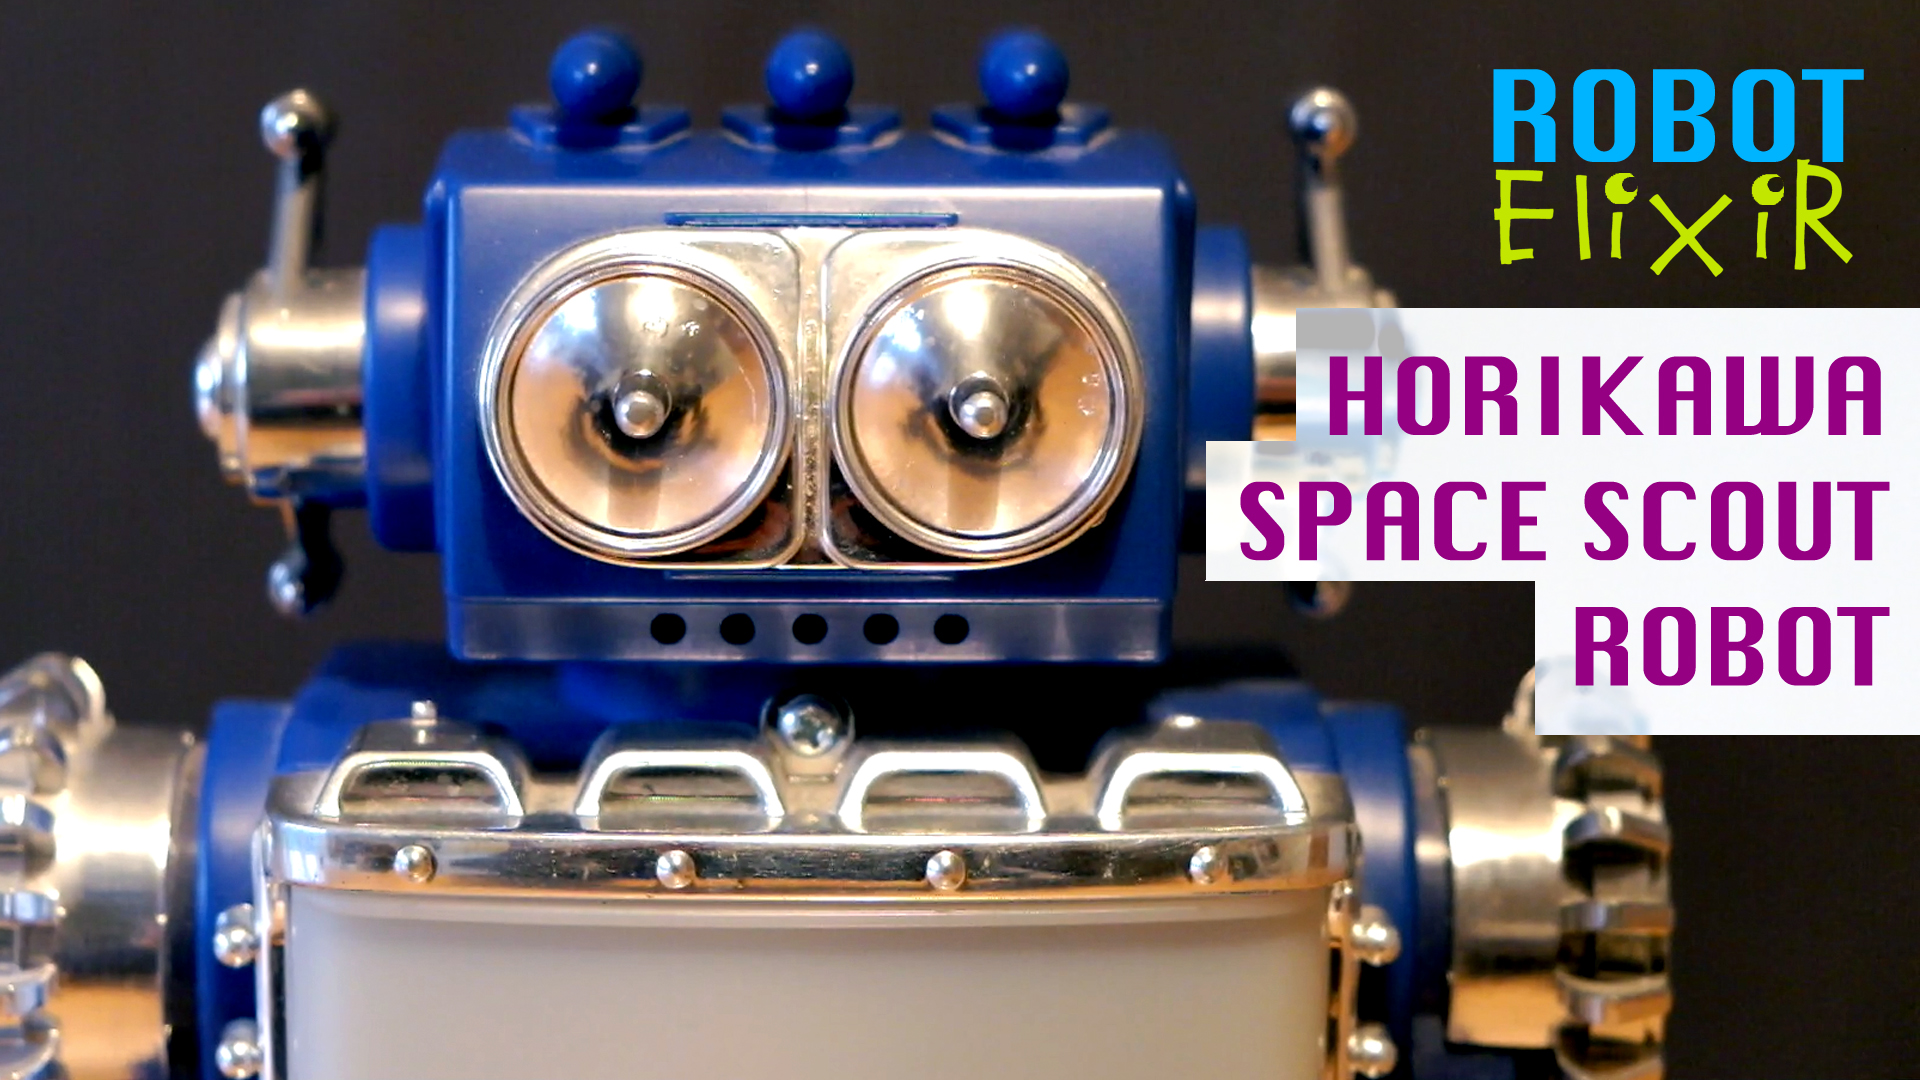 Horikawa Space Scout Toy Robot Video